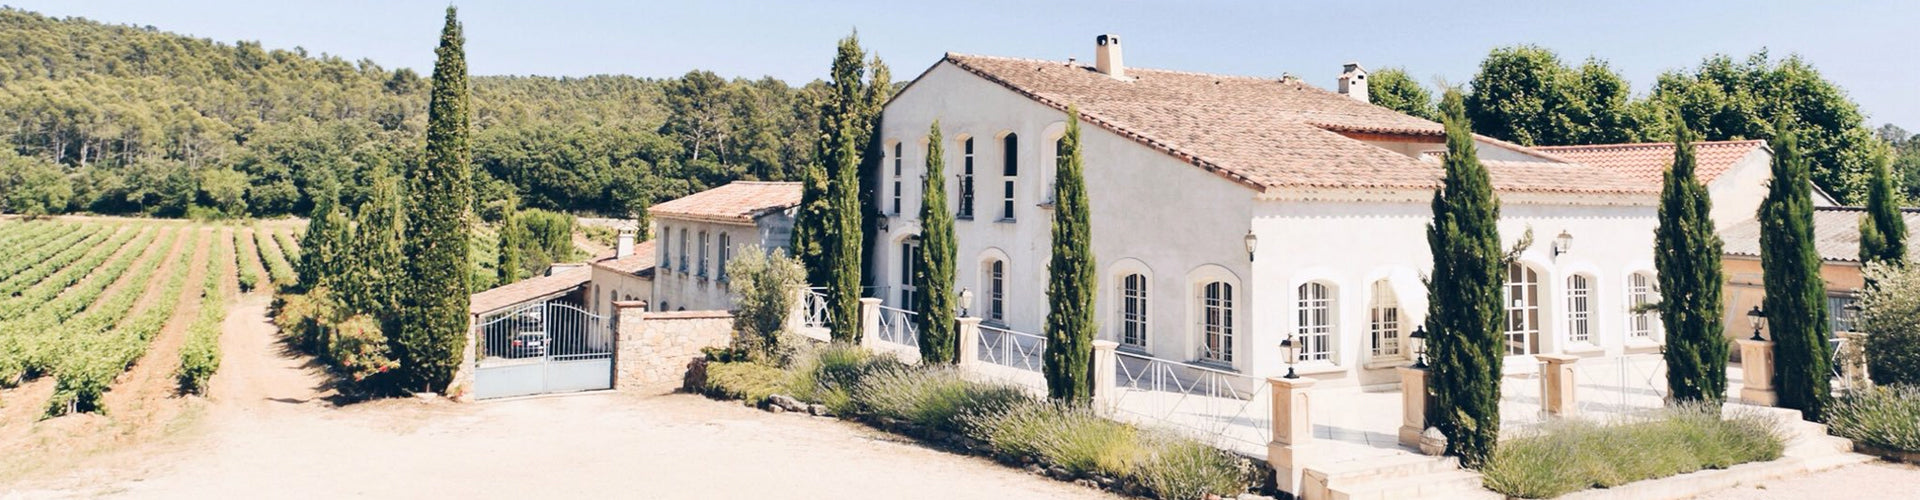 The Domaine du Grand Cros property in Provence